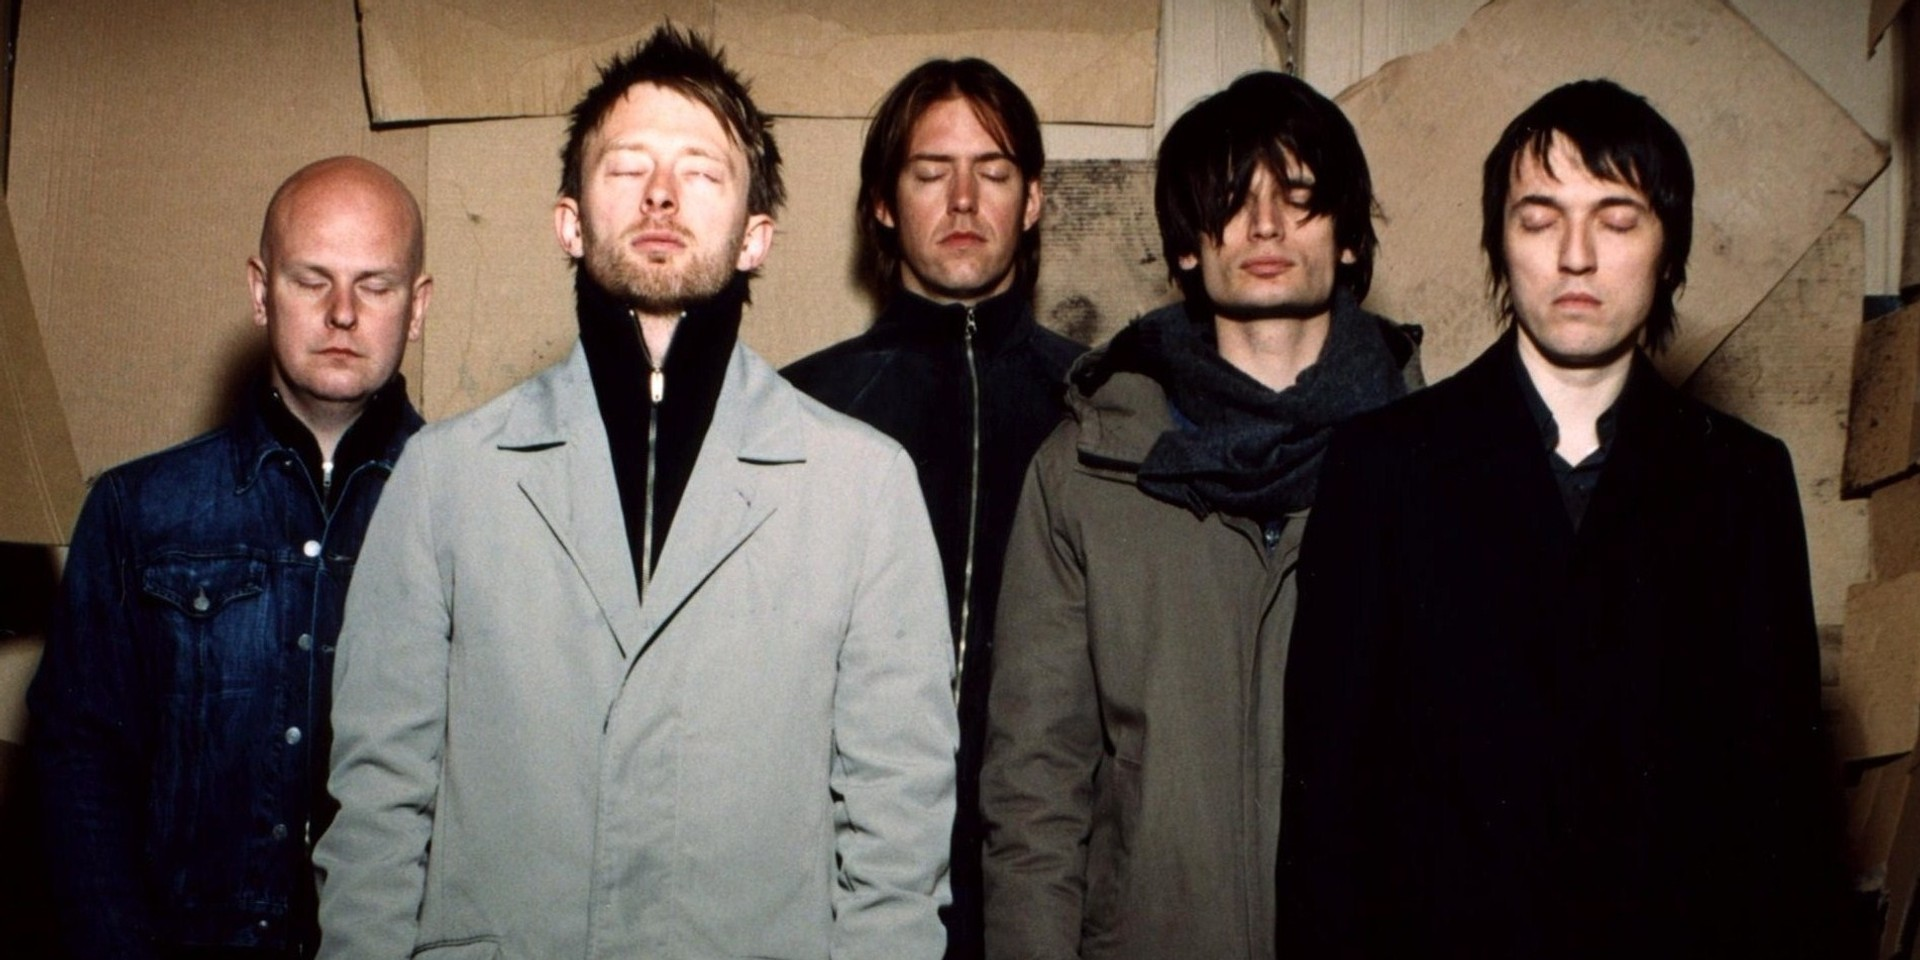 Radiohead's entire discography can now be found on YouTube